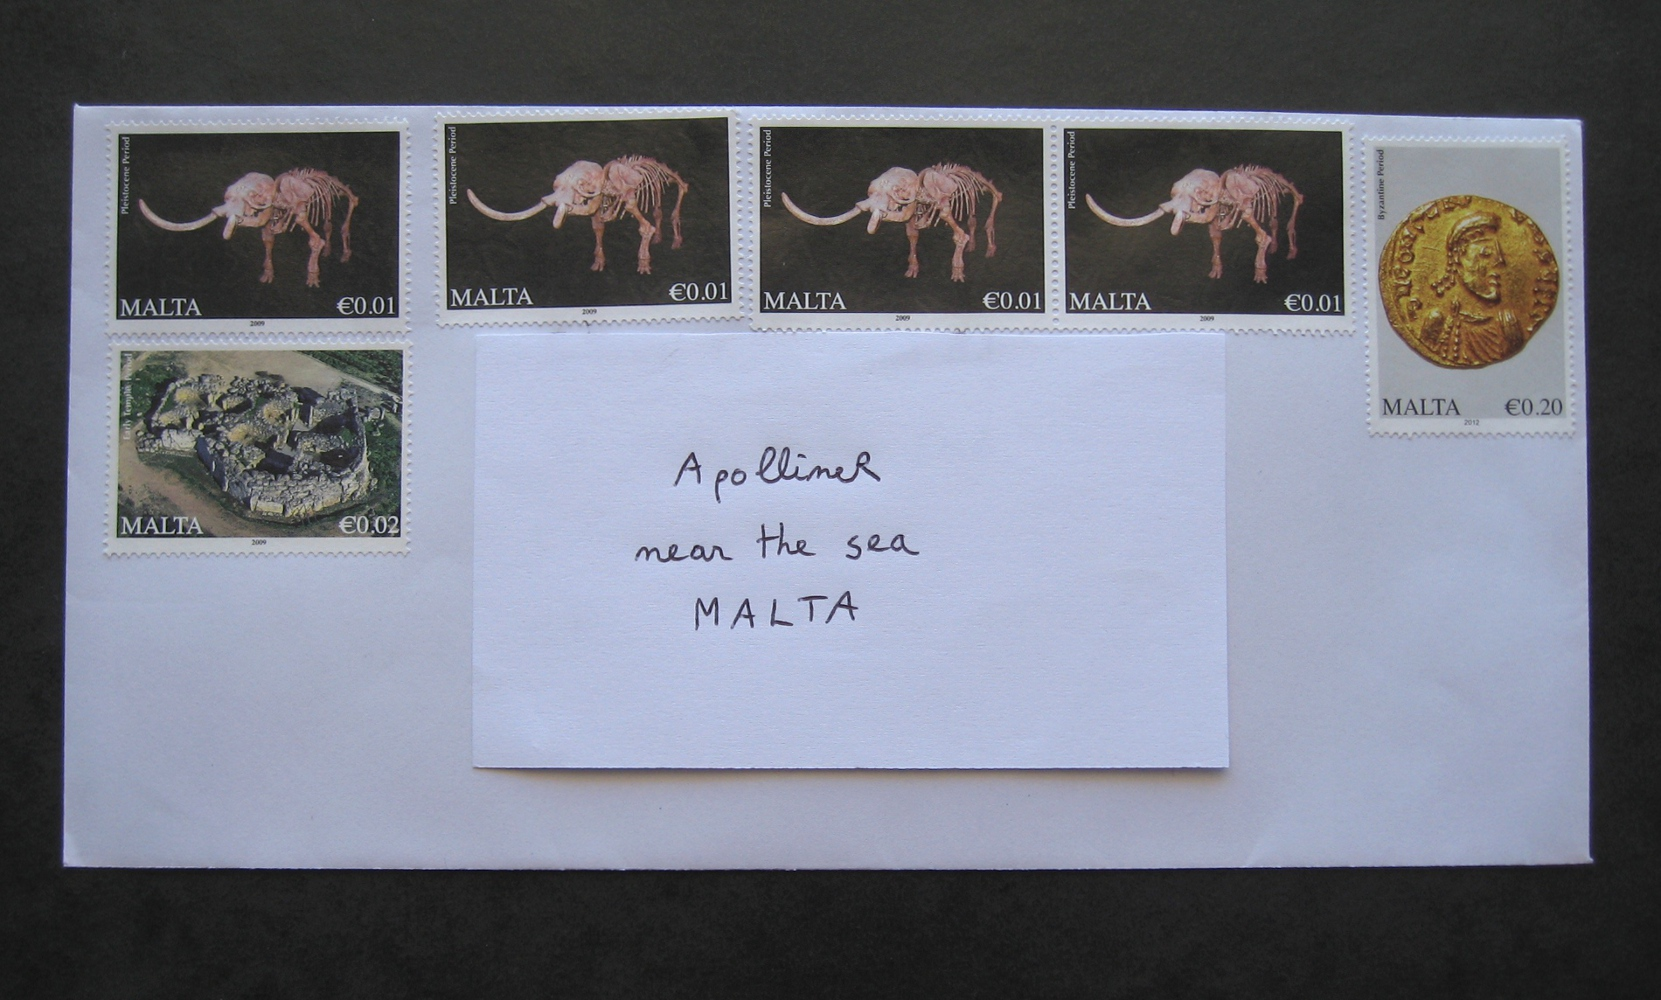 Envelope covered in Maltese stamps